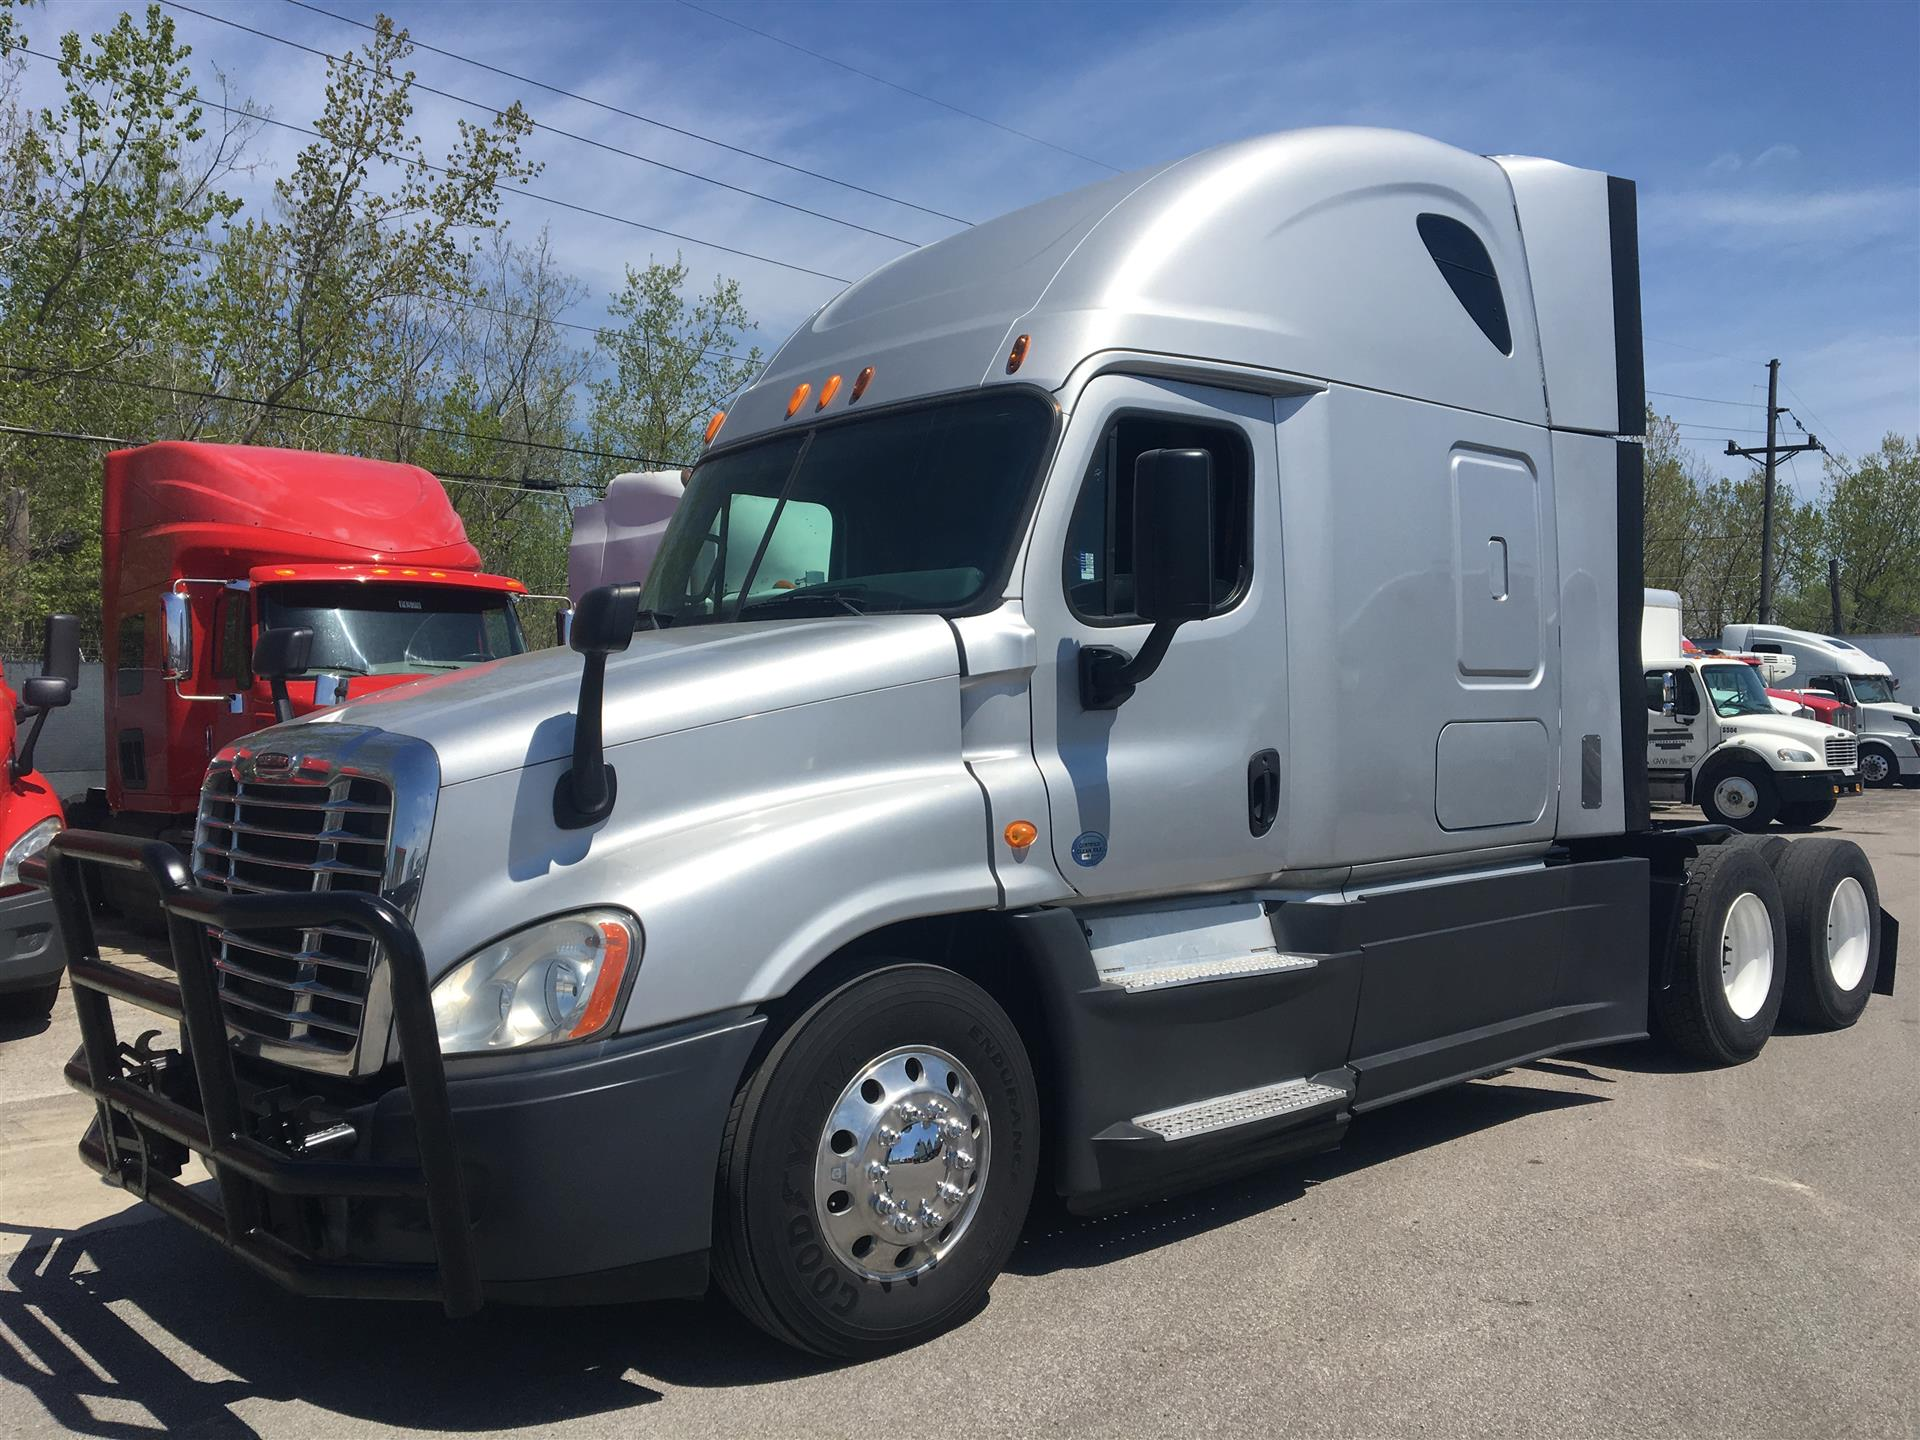 Photo Gallery - Unit# 19303 - 2014 Freightliner Cascadia